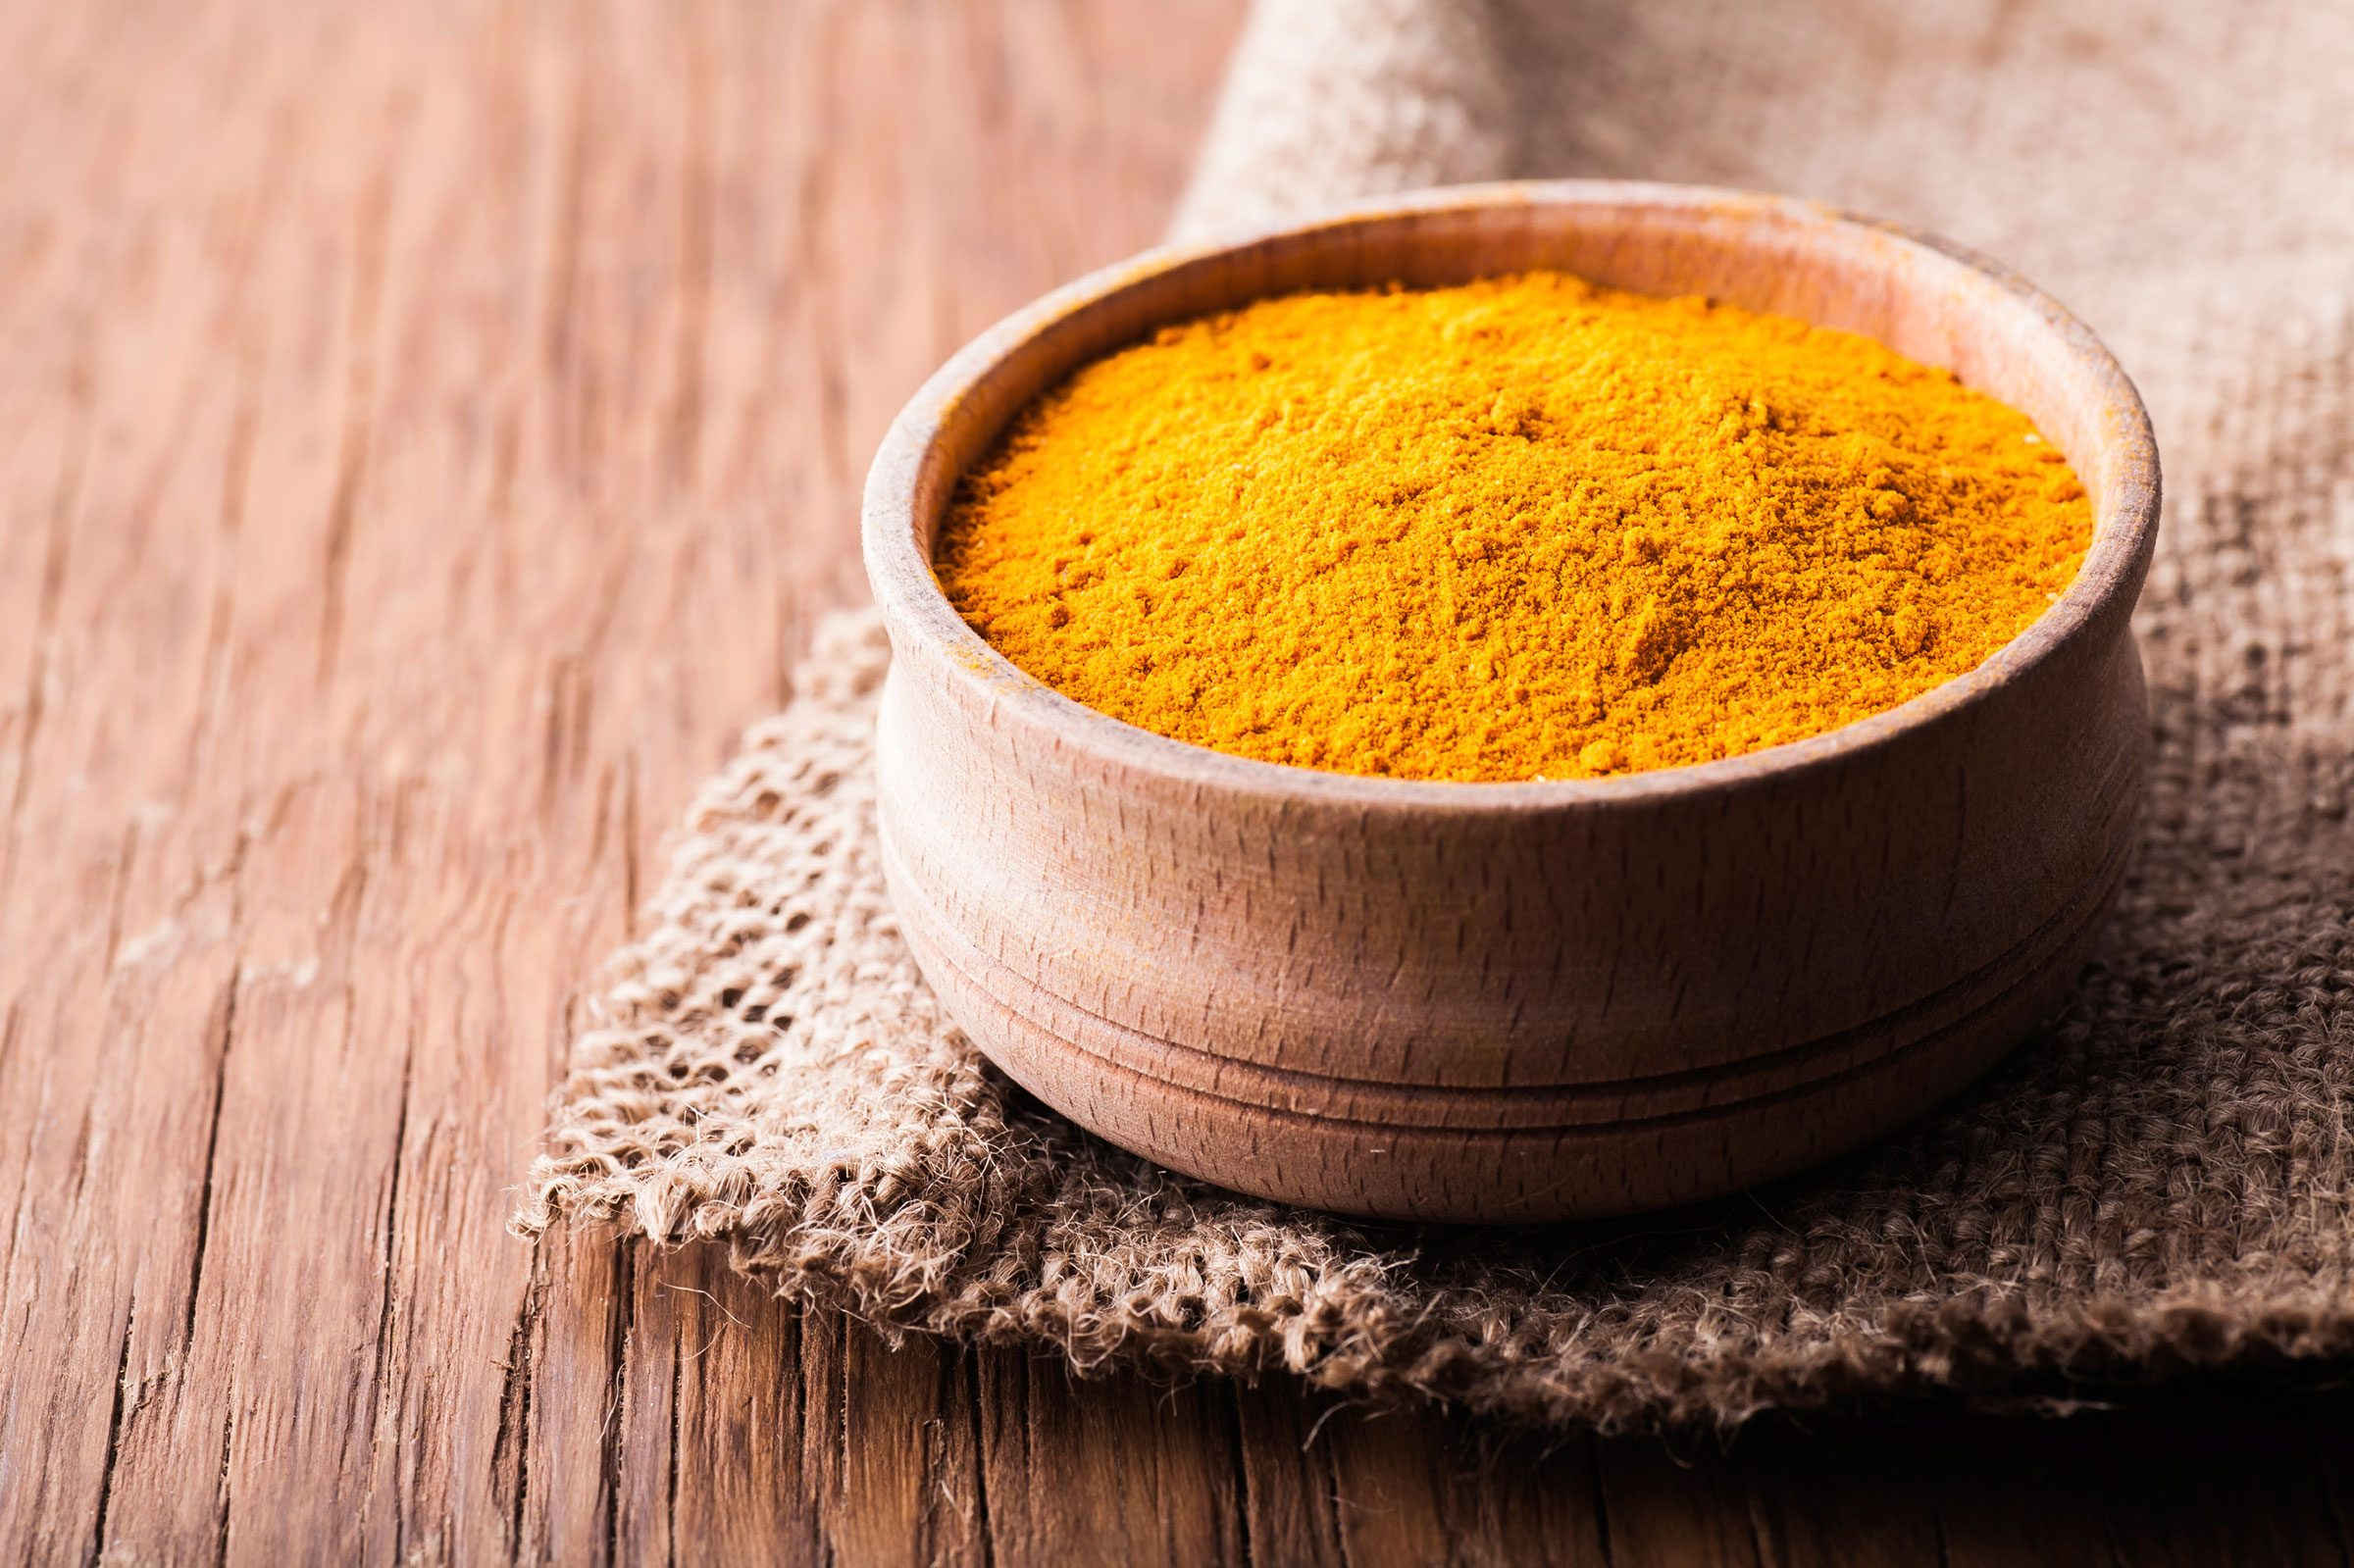 Eat: Turmeric